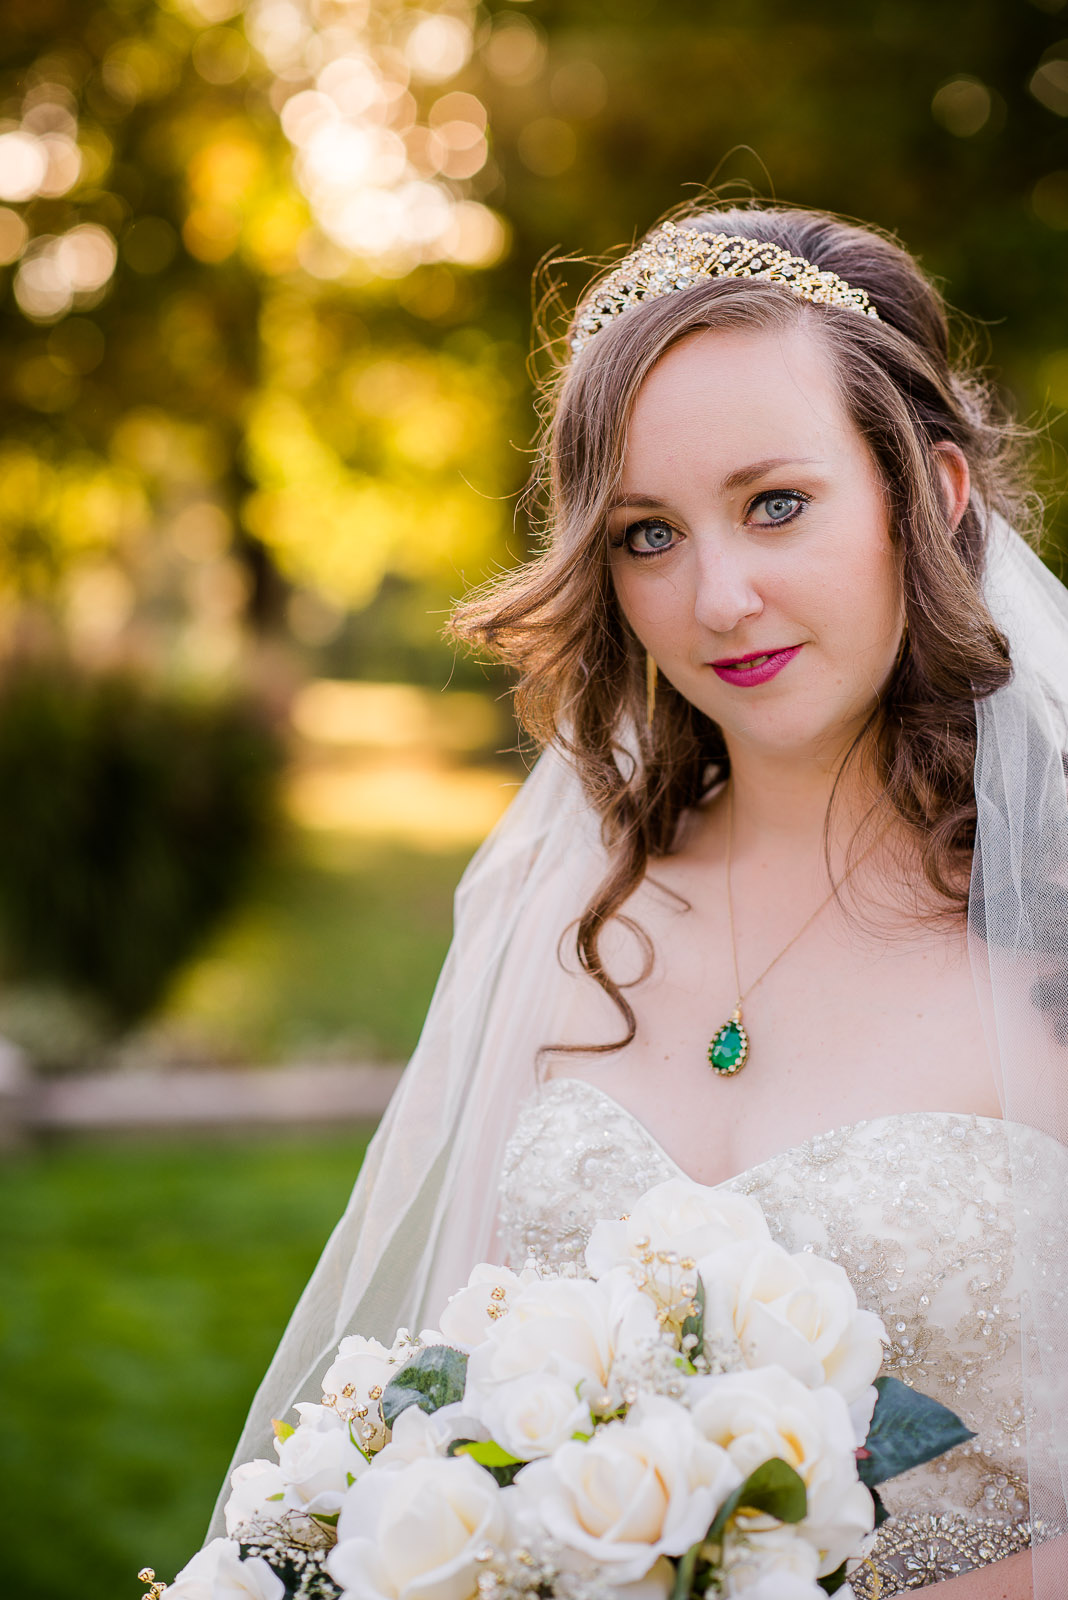 Eric_and_Christy_Photography_Blog_2017_Best_Portraits-36